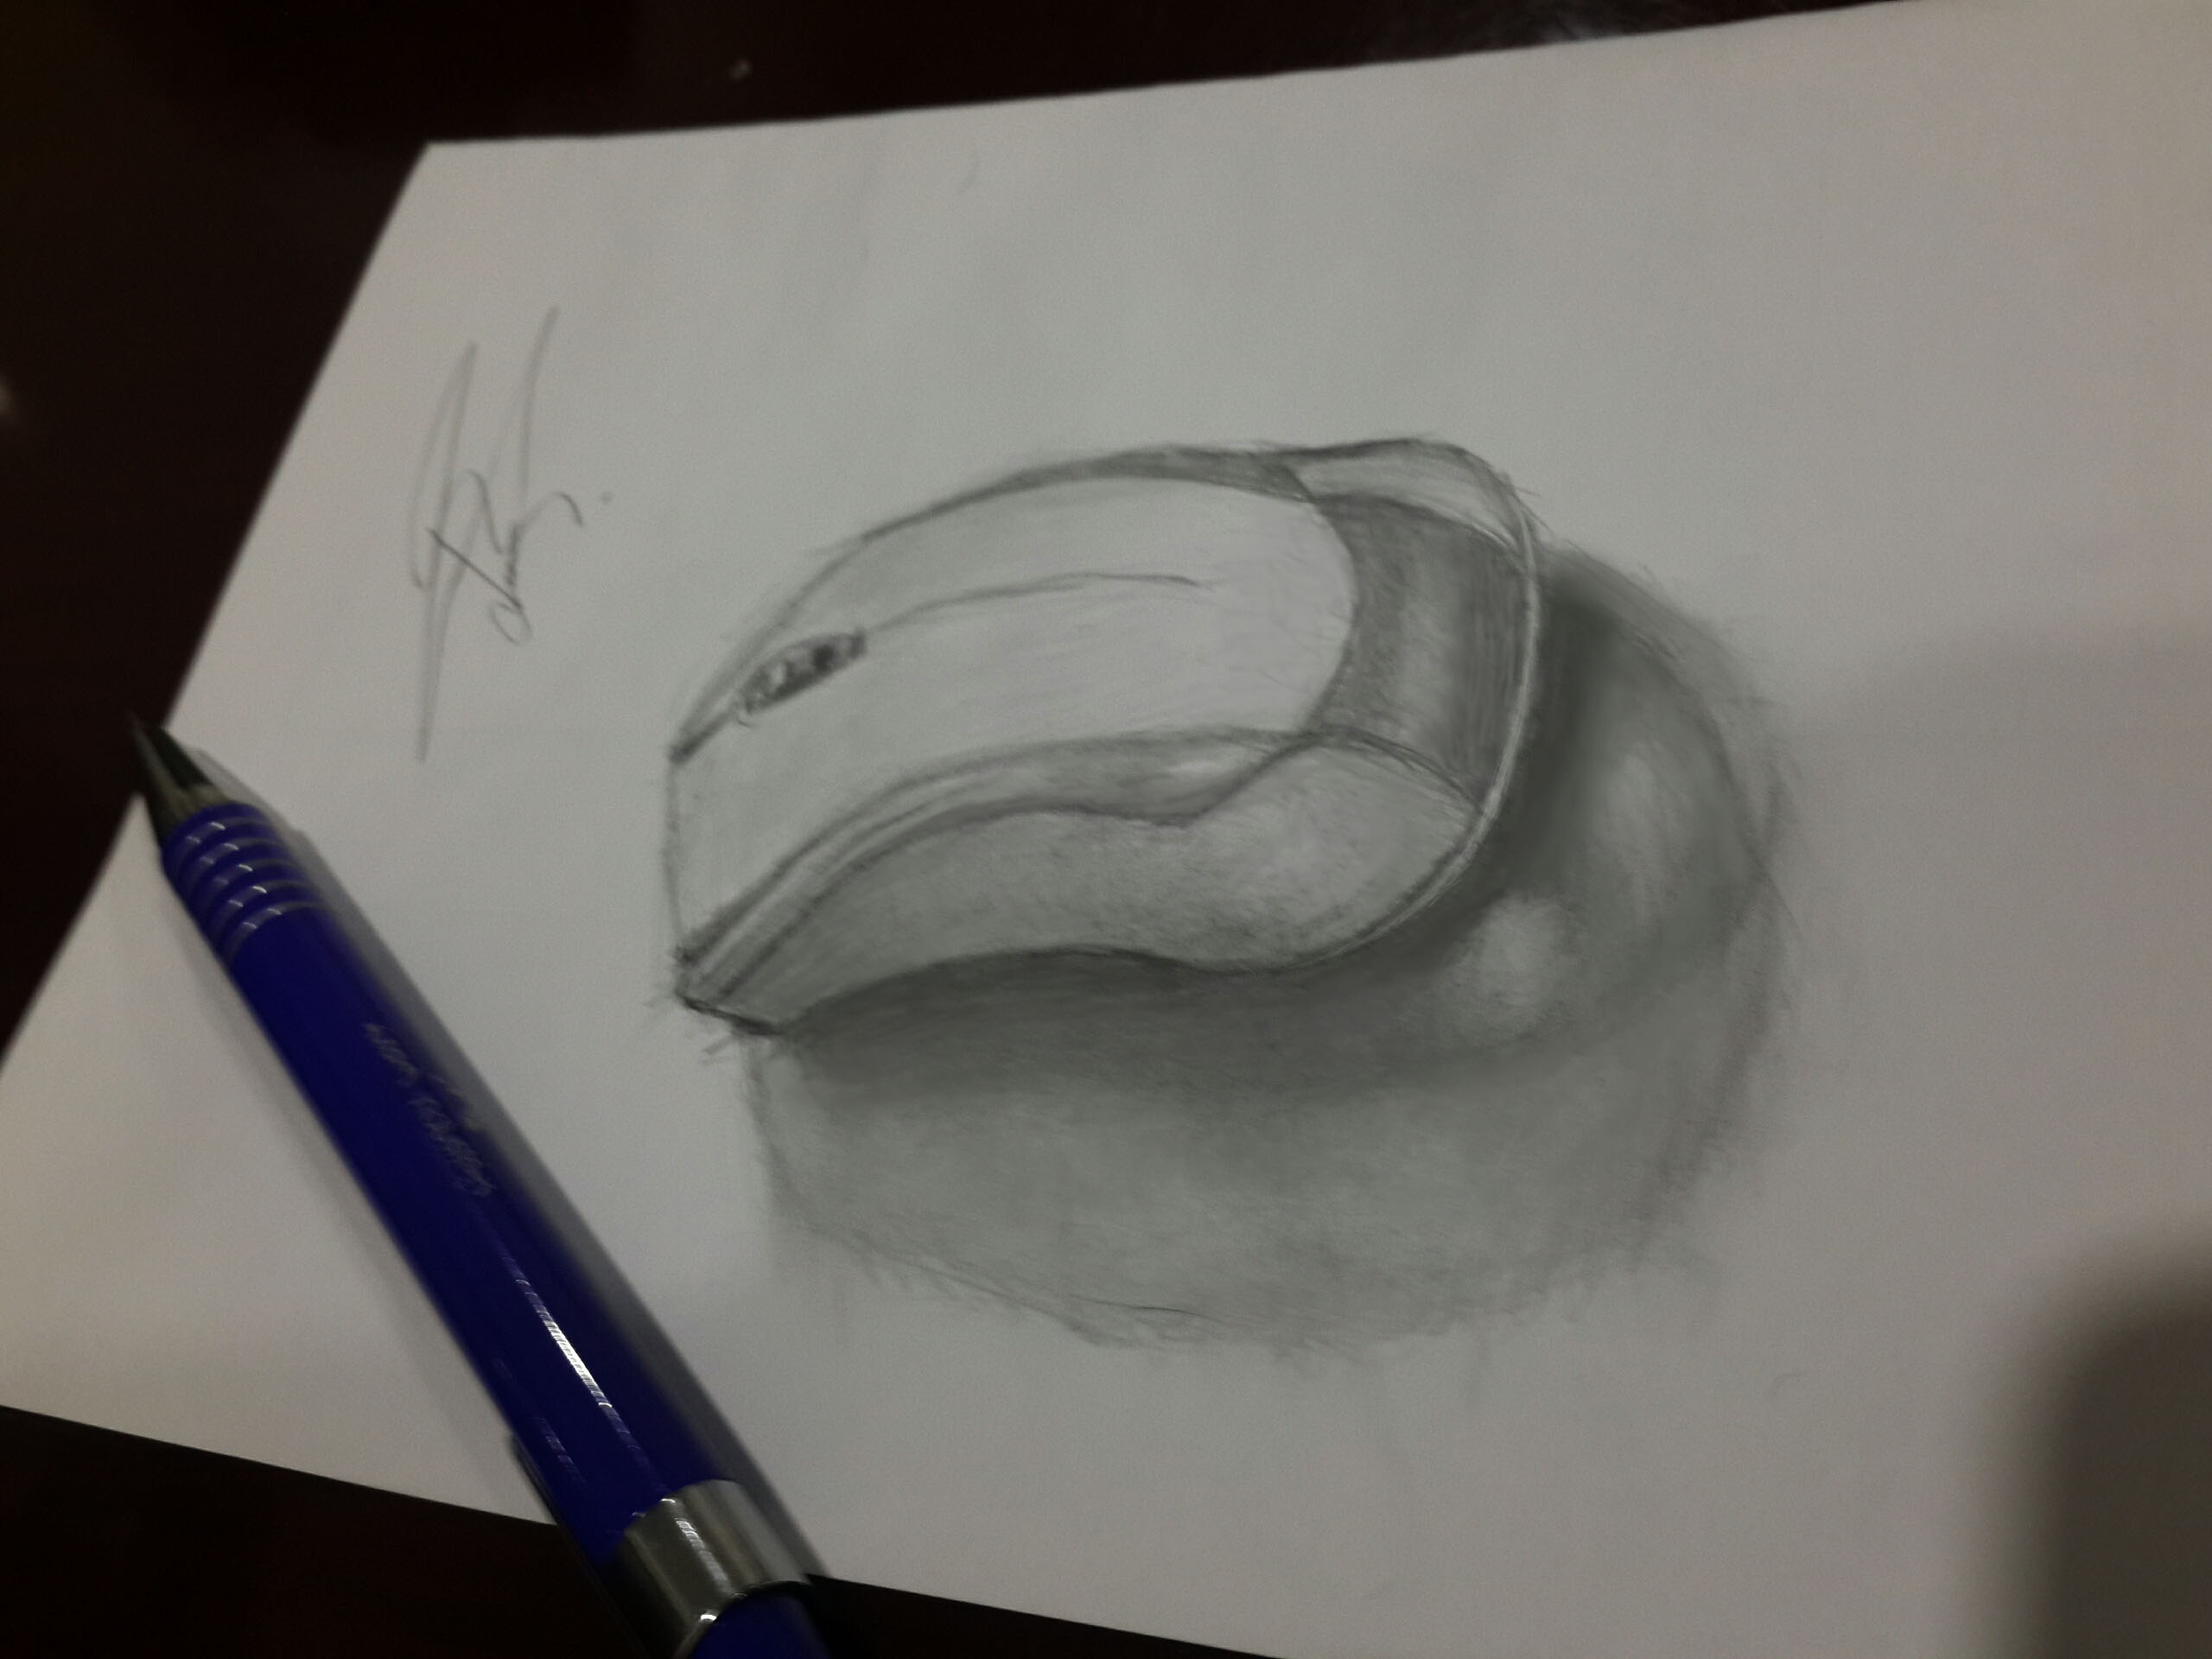 2560x1920 Mechanical Pencil Drawing Computer Mouse